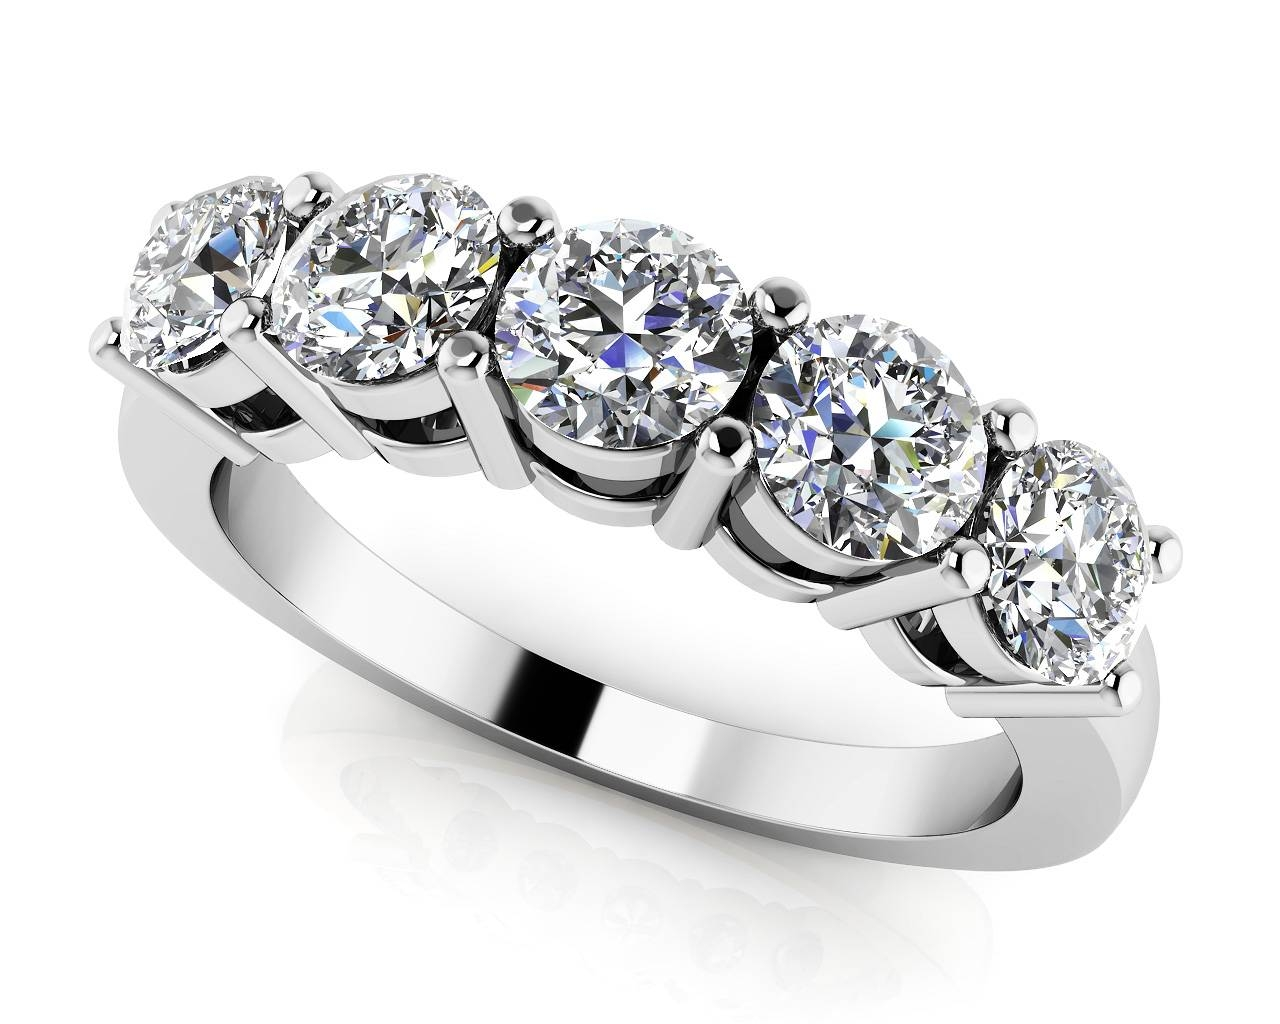 Design Your Own Diamond Anniversary Ring & Eternity Ring With Recent Vintage Anniversary Rings For Her (View 8 of 25)